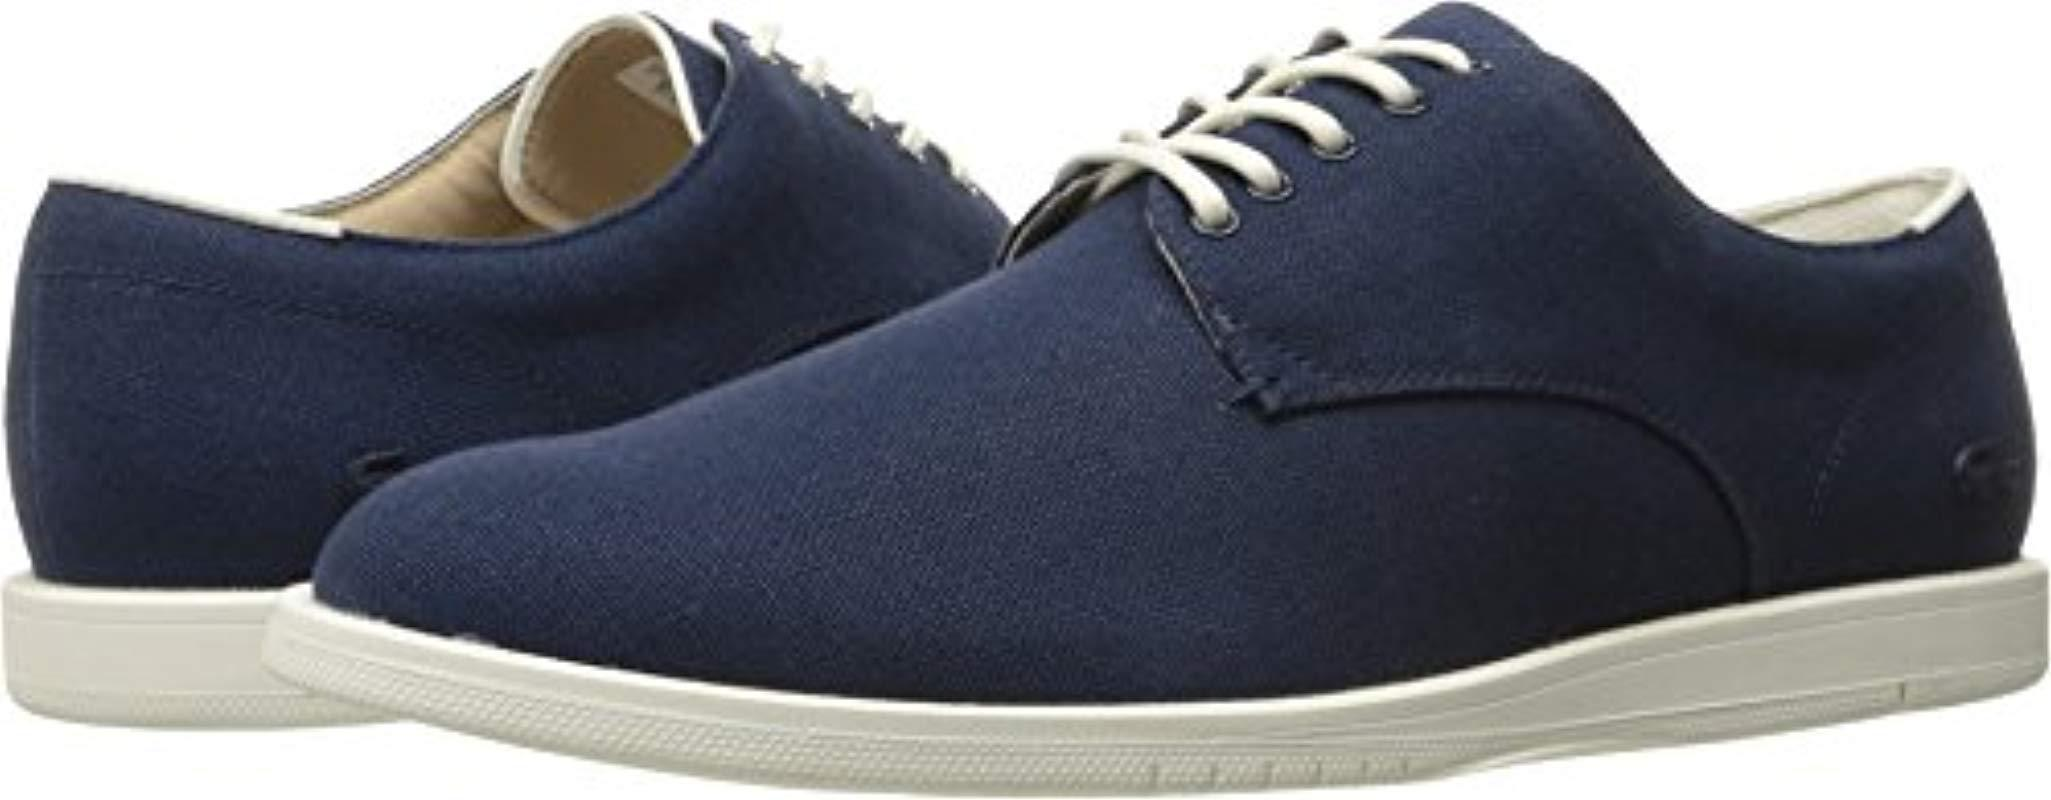 217 Laccord Lyst For Lacoste In Blue Men 1 7Hx4wx